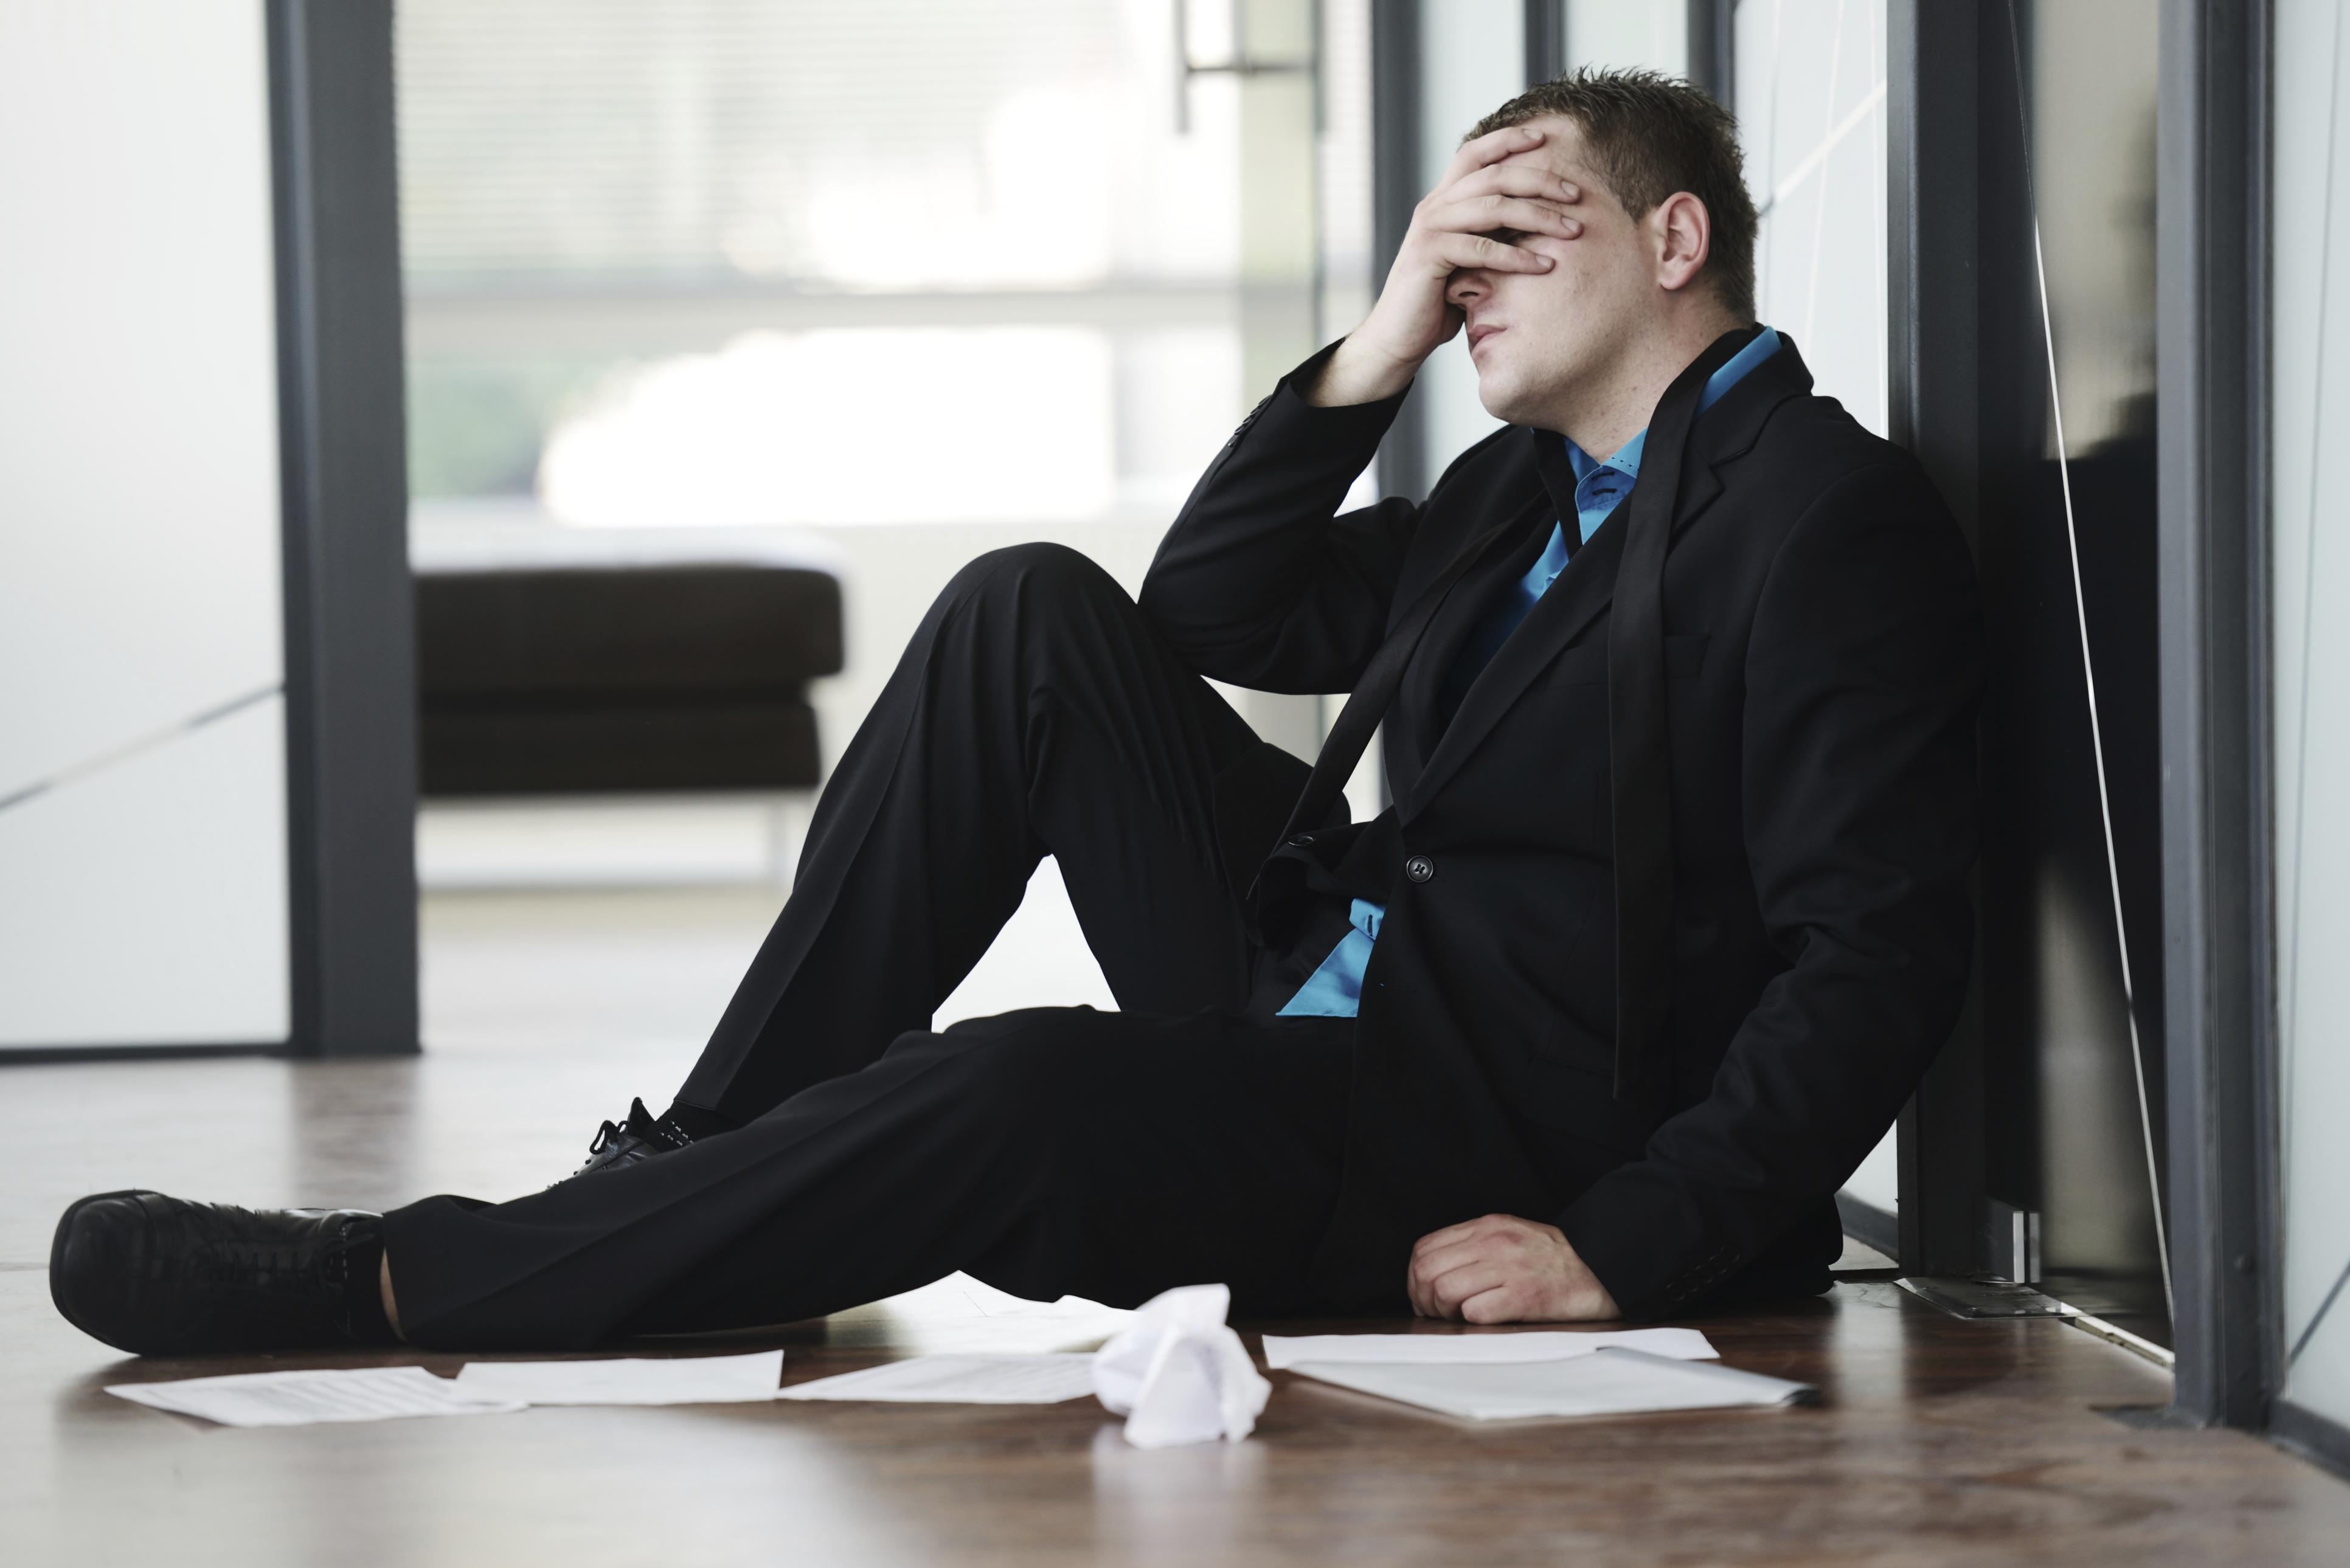 Study: Men with low stress levels live longer